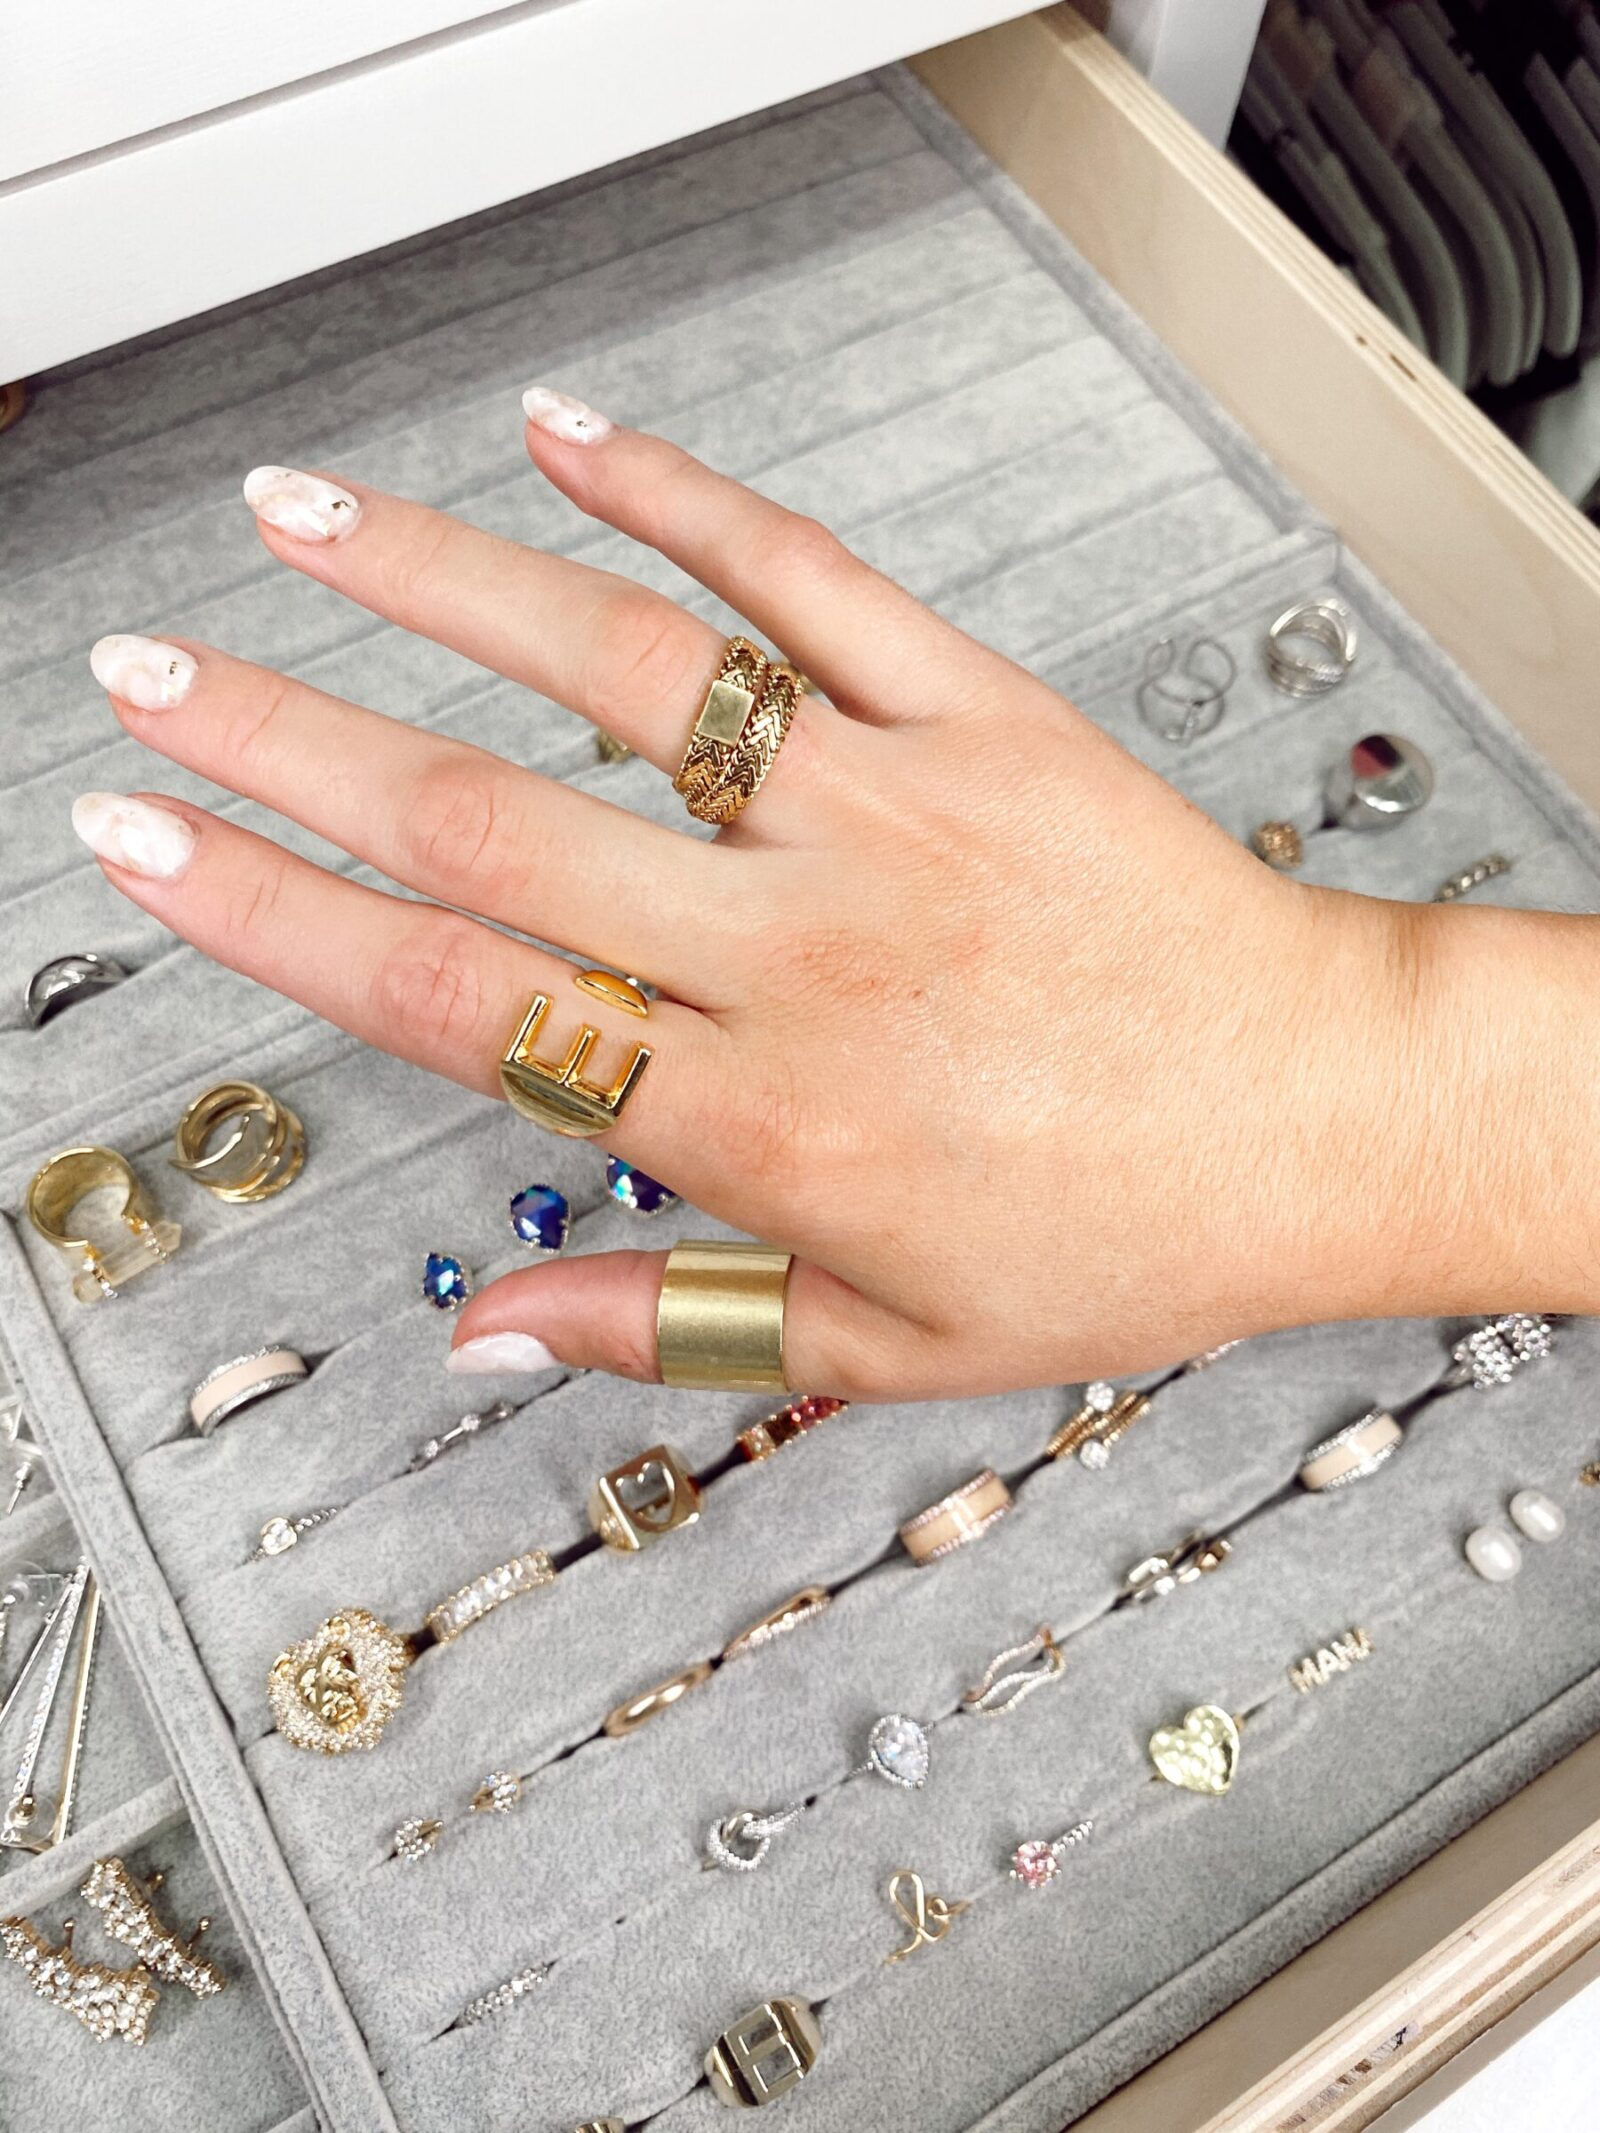 Wanting to elevate your look but not sure how? Houston fashion blogger Elly Brown rounds up her favorite everyday gold rings you will love.